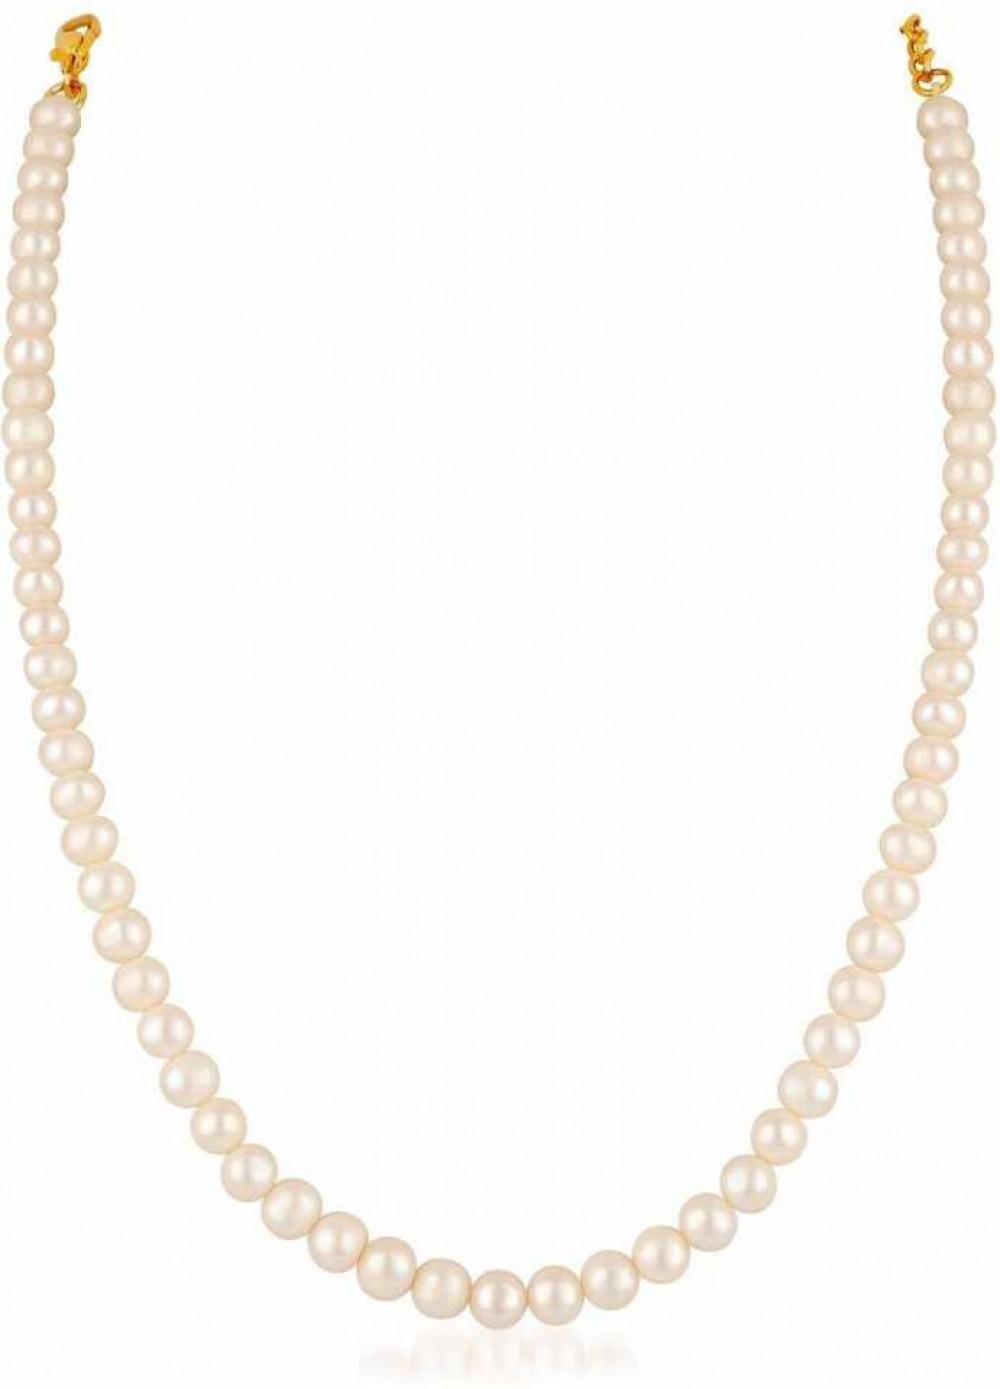 1 Mother of Pearl Gold-plated Plated Mother of Pearl Necklace